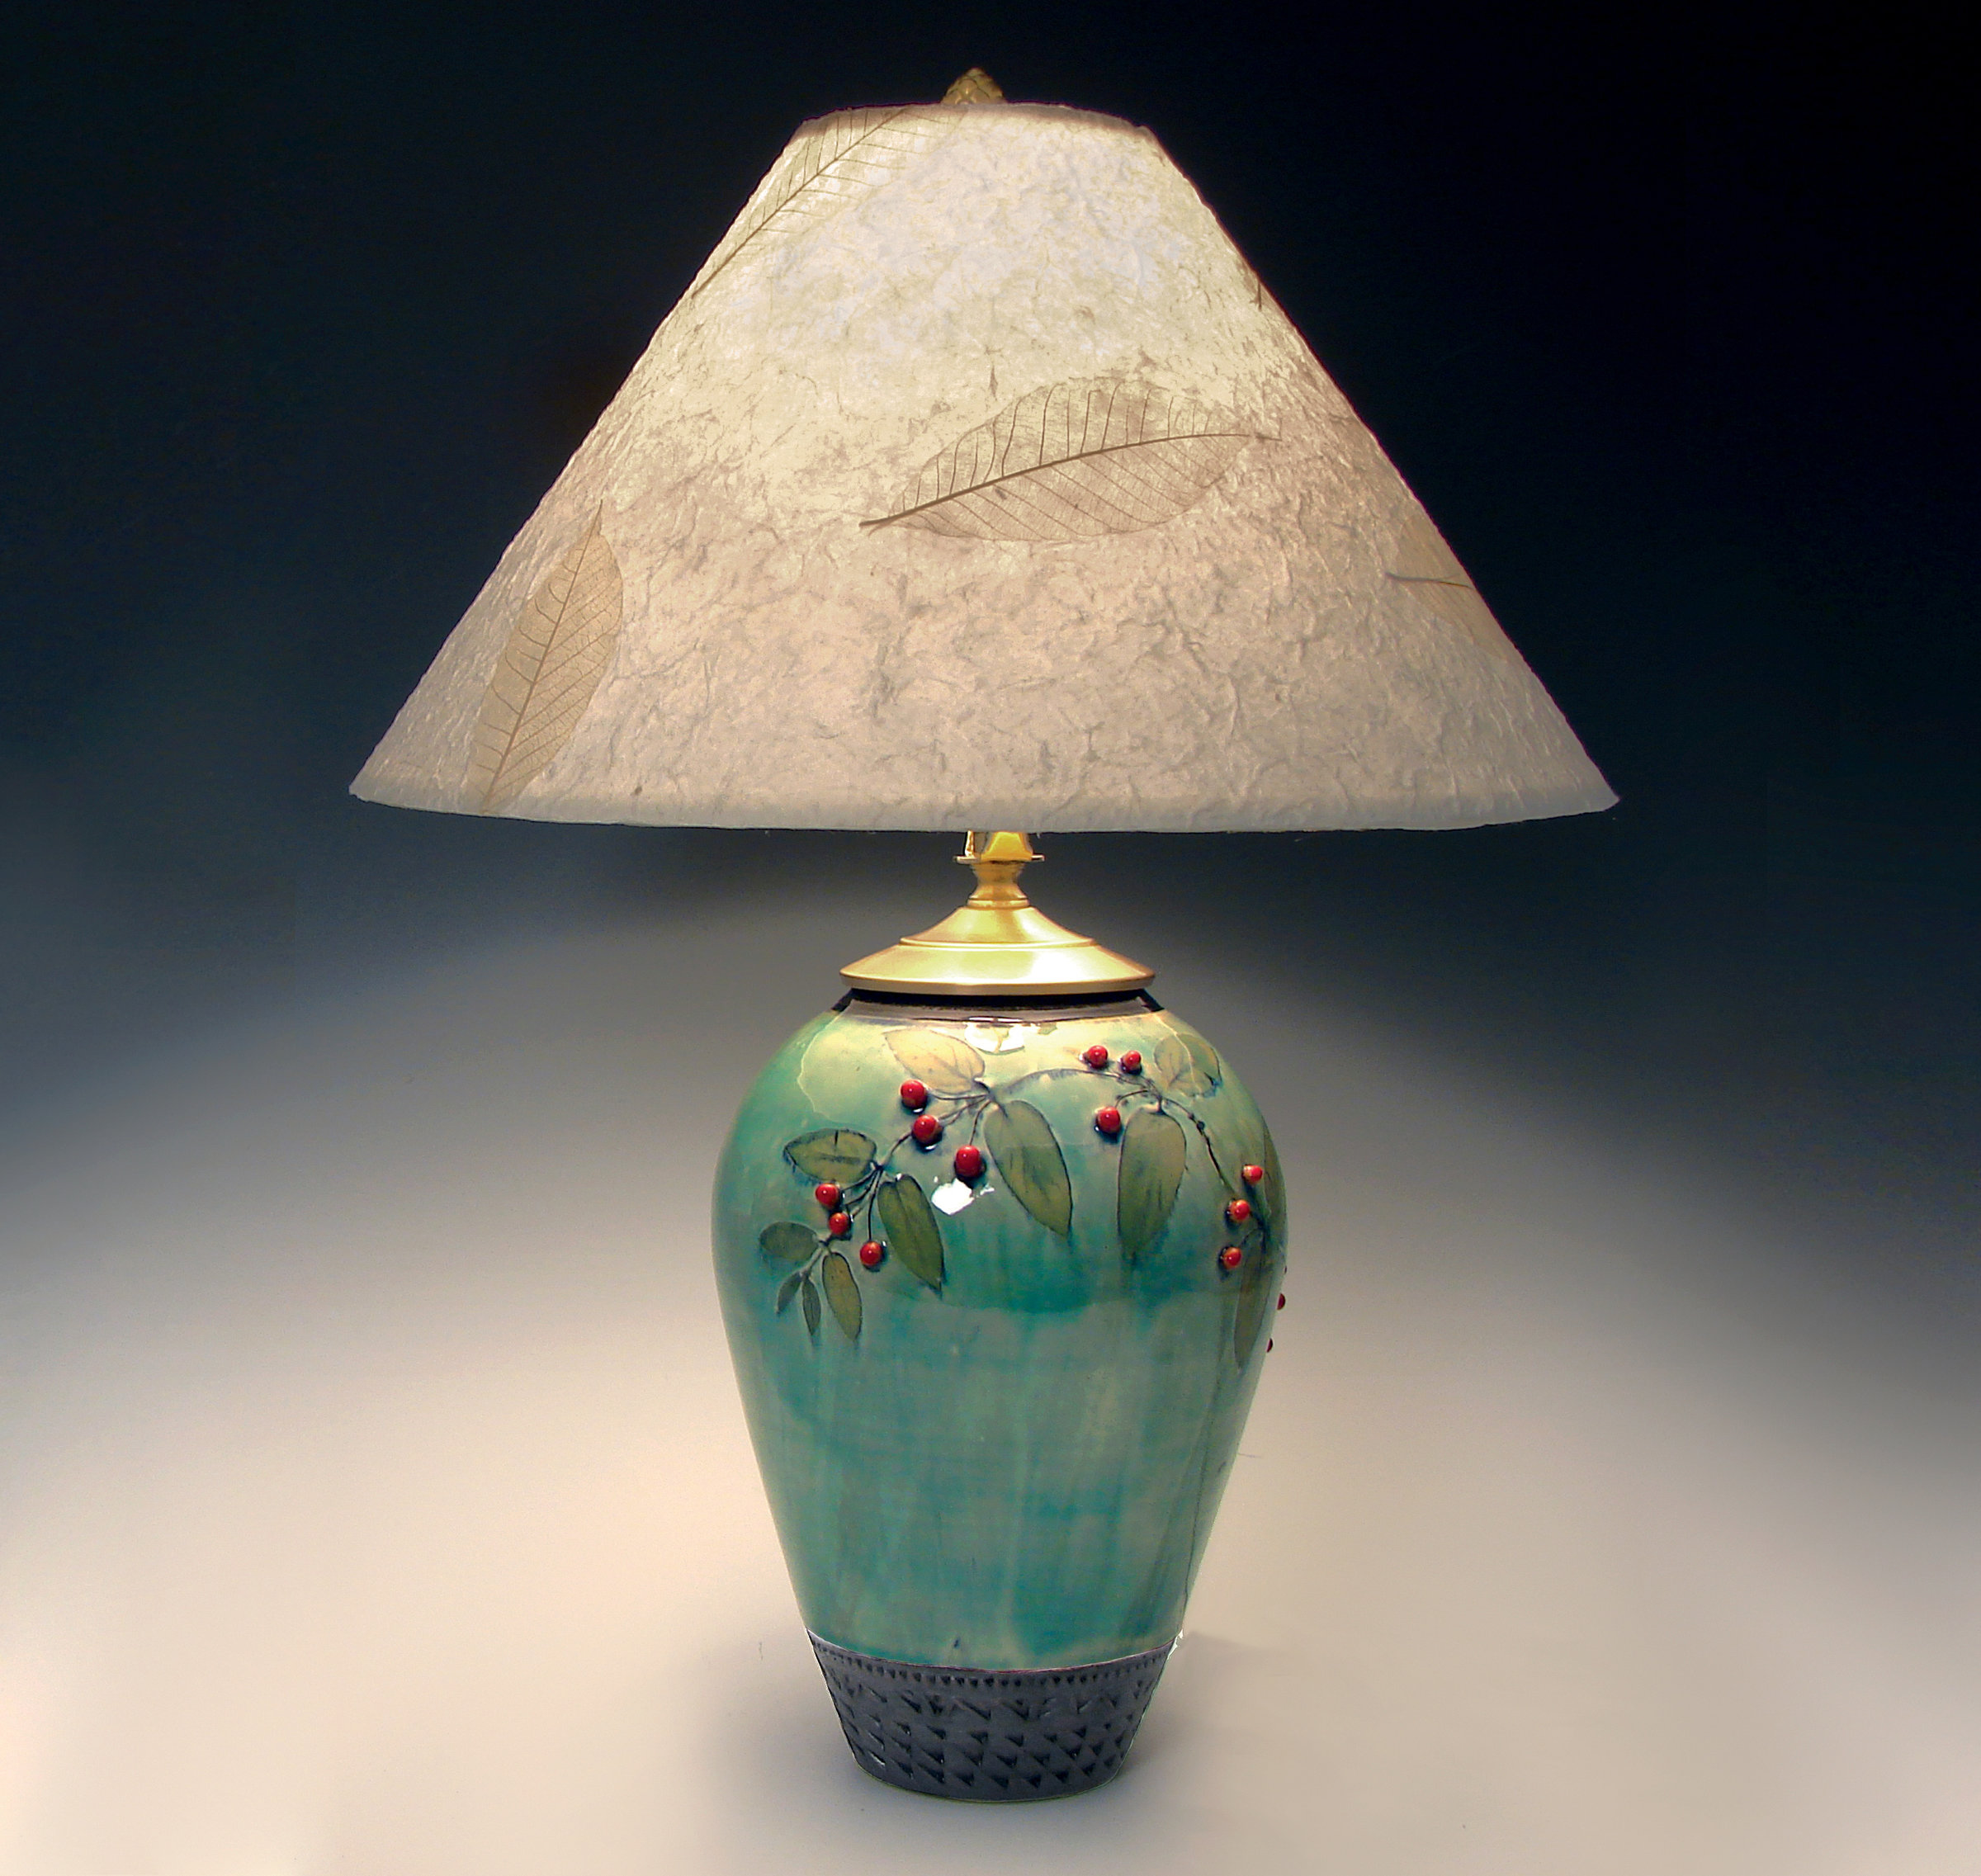 Small celadon lamp with red berries by suzanne crane for Ceramic table lamps